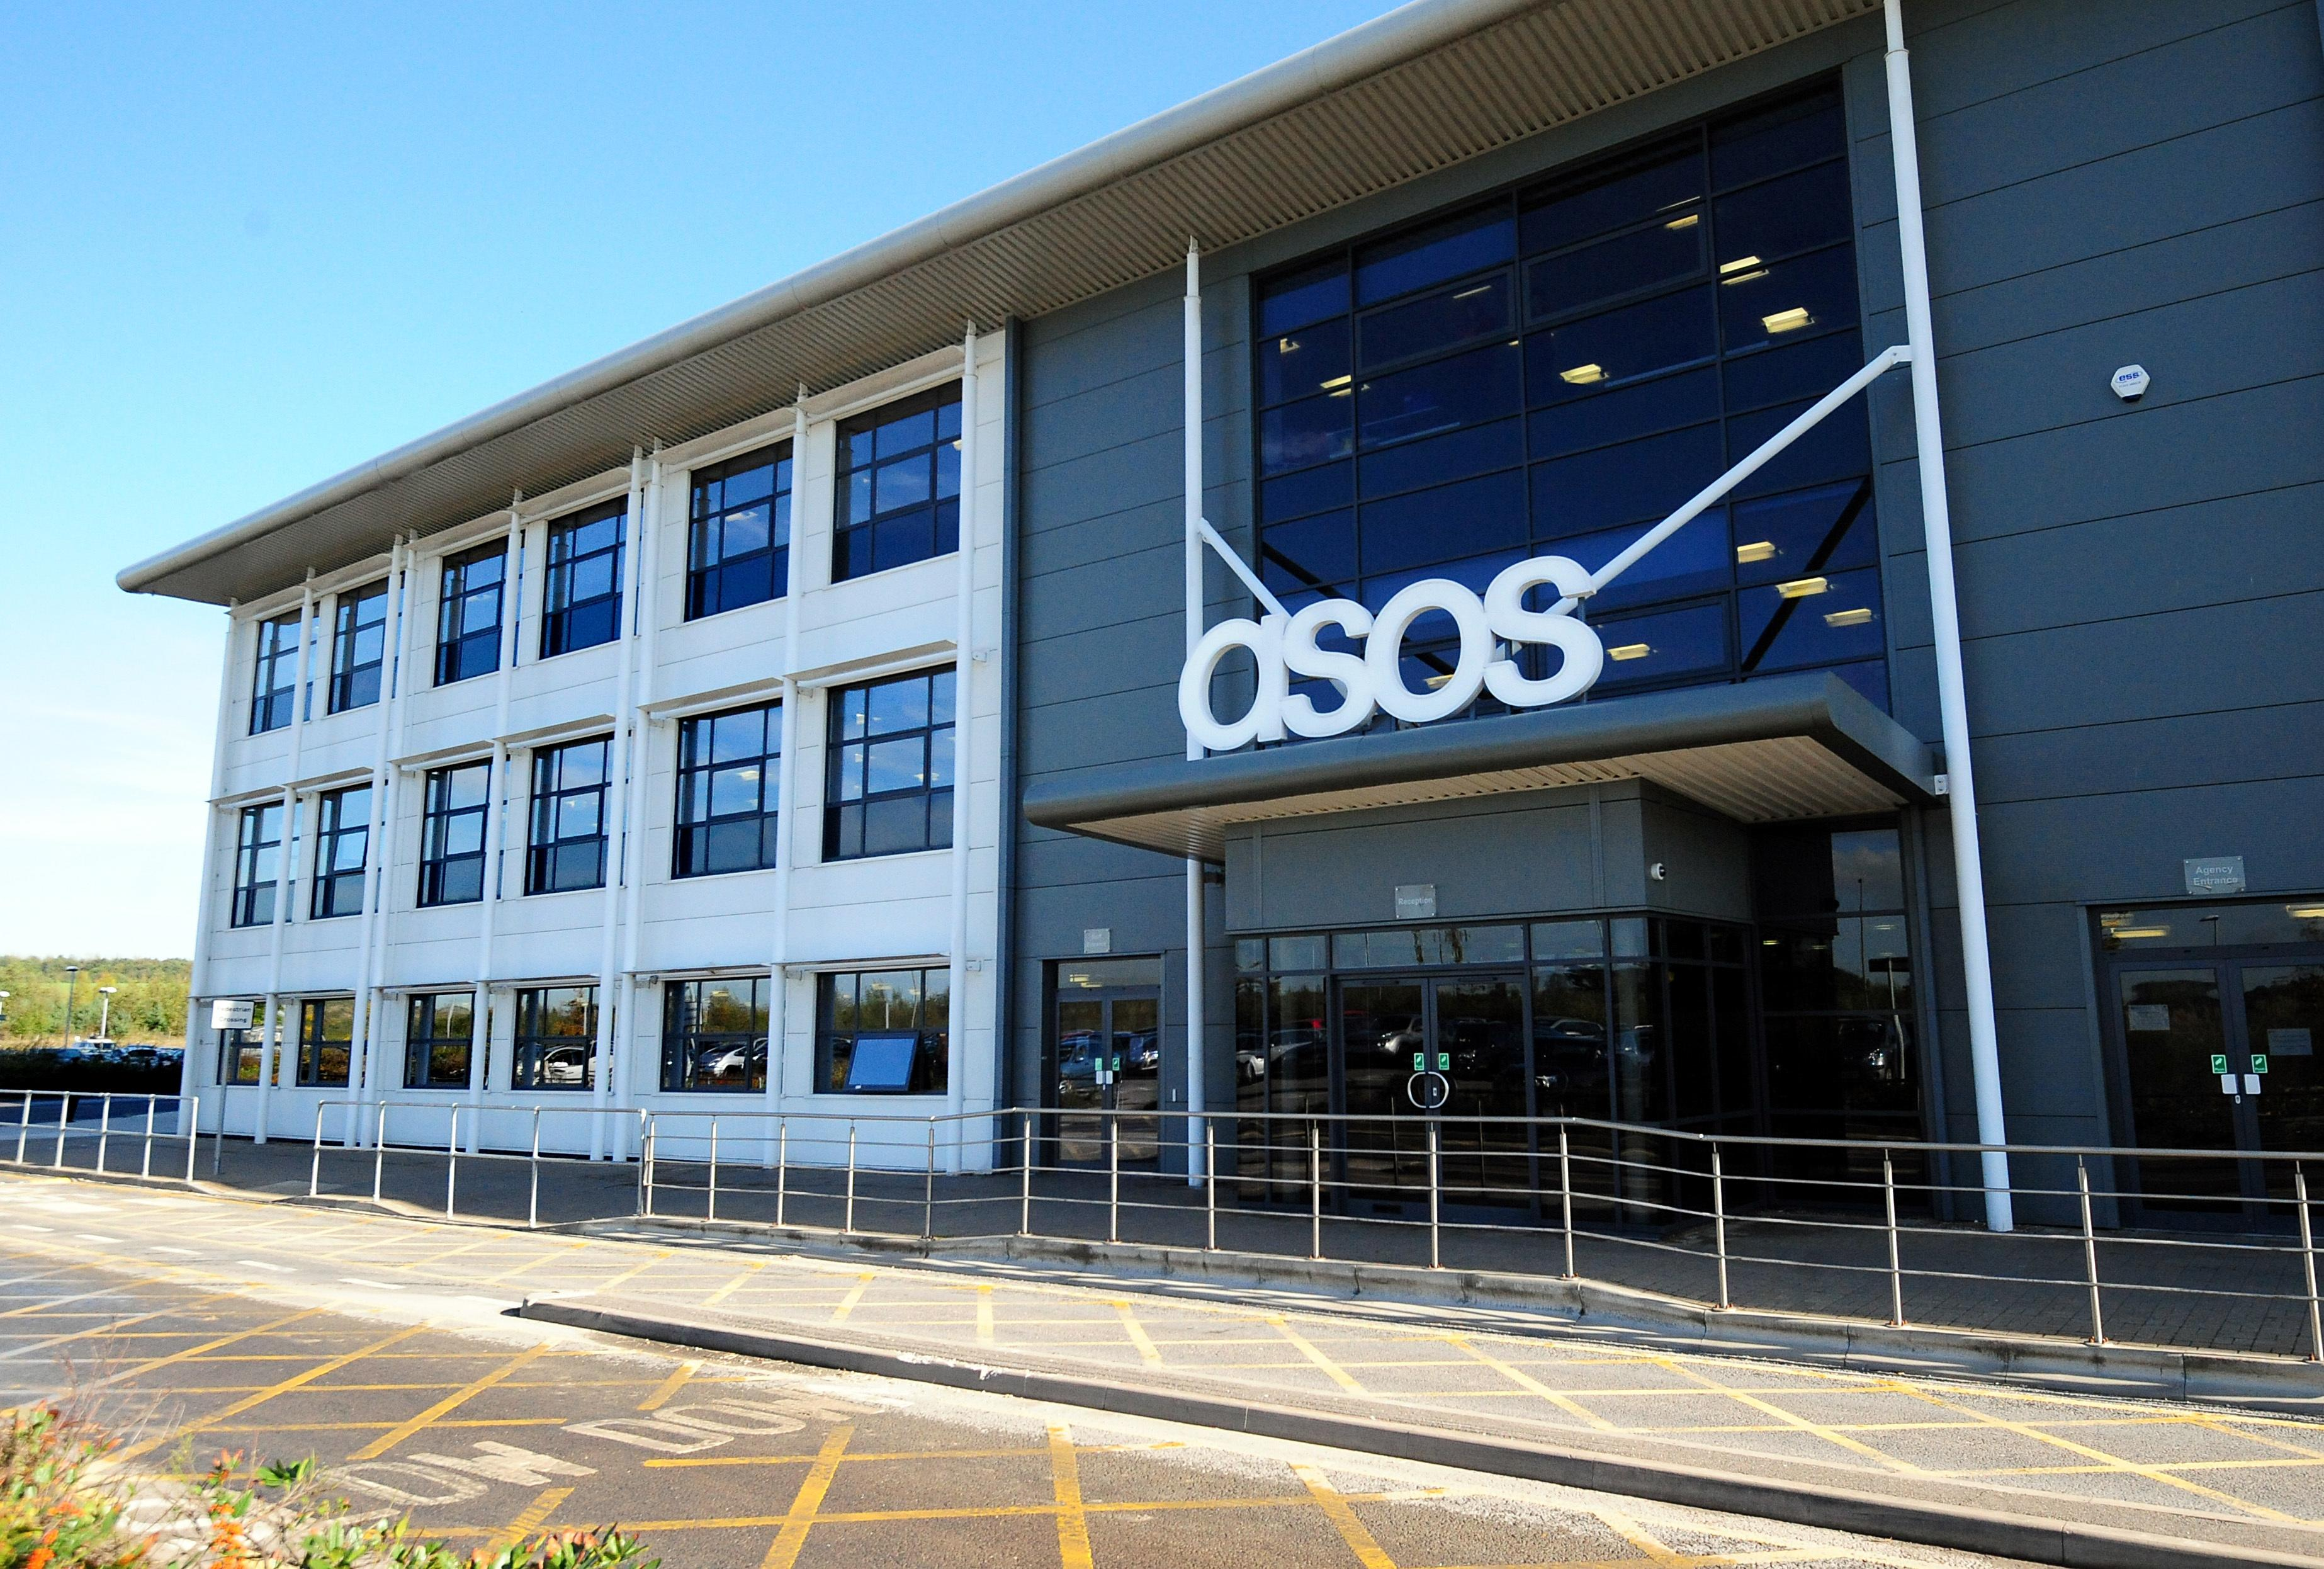 Asos blames warehouse issues for 68% plunge in profits